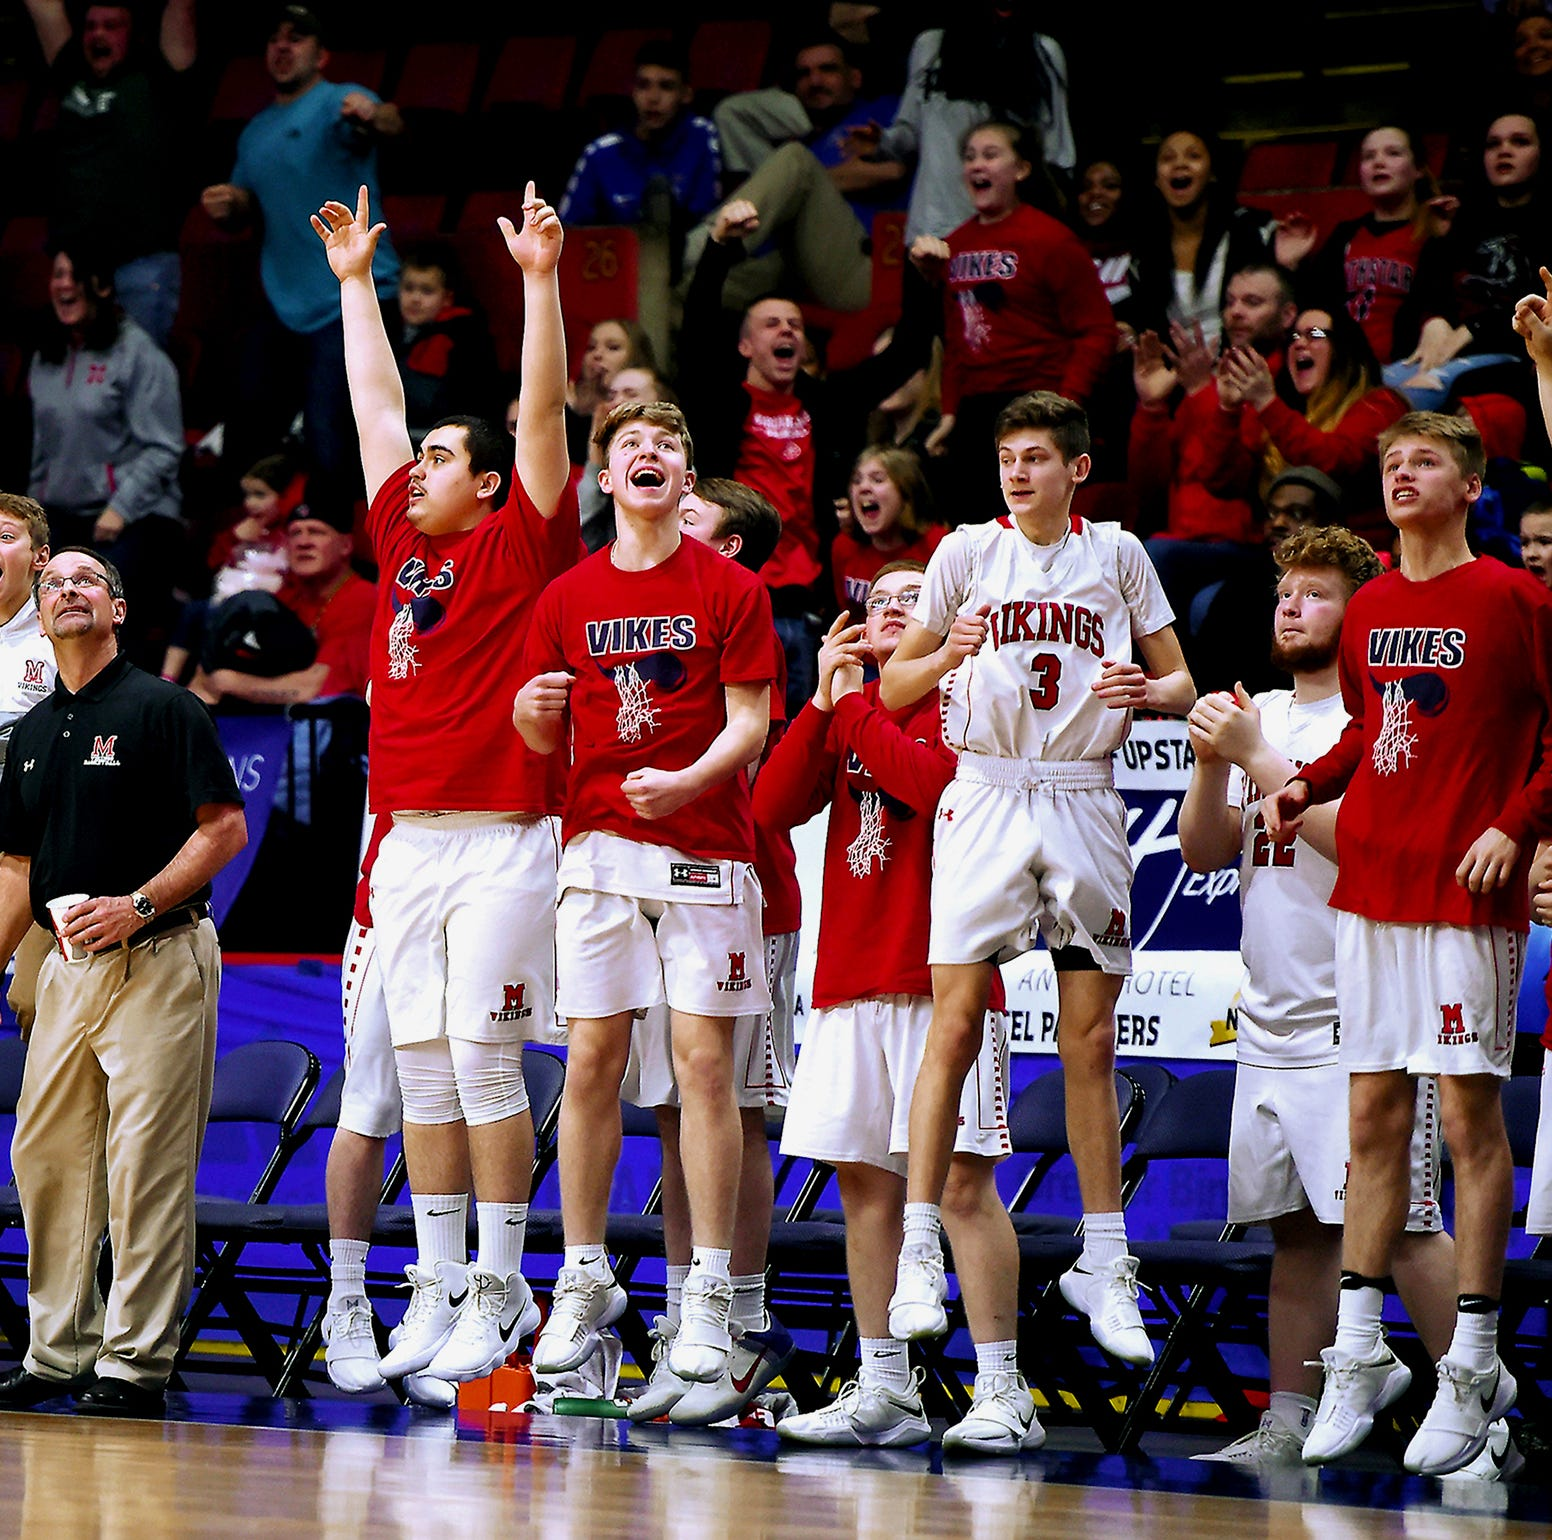 New York Boys Basketball: All of our NYSPHSAA tournament coverage in one place